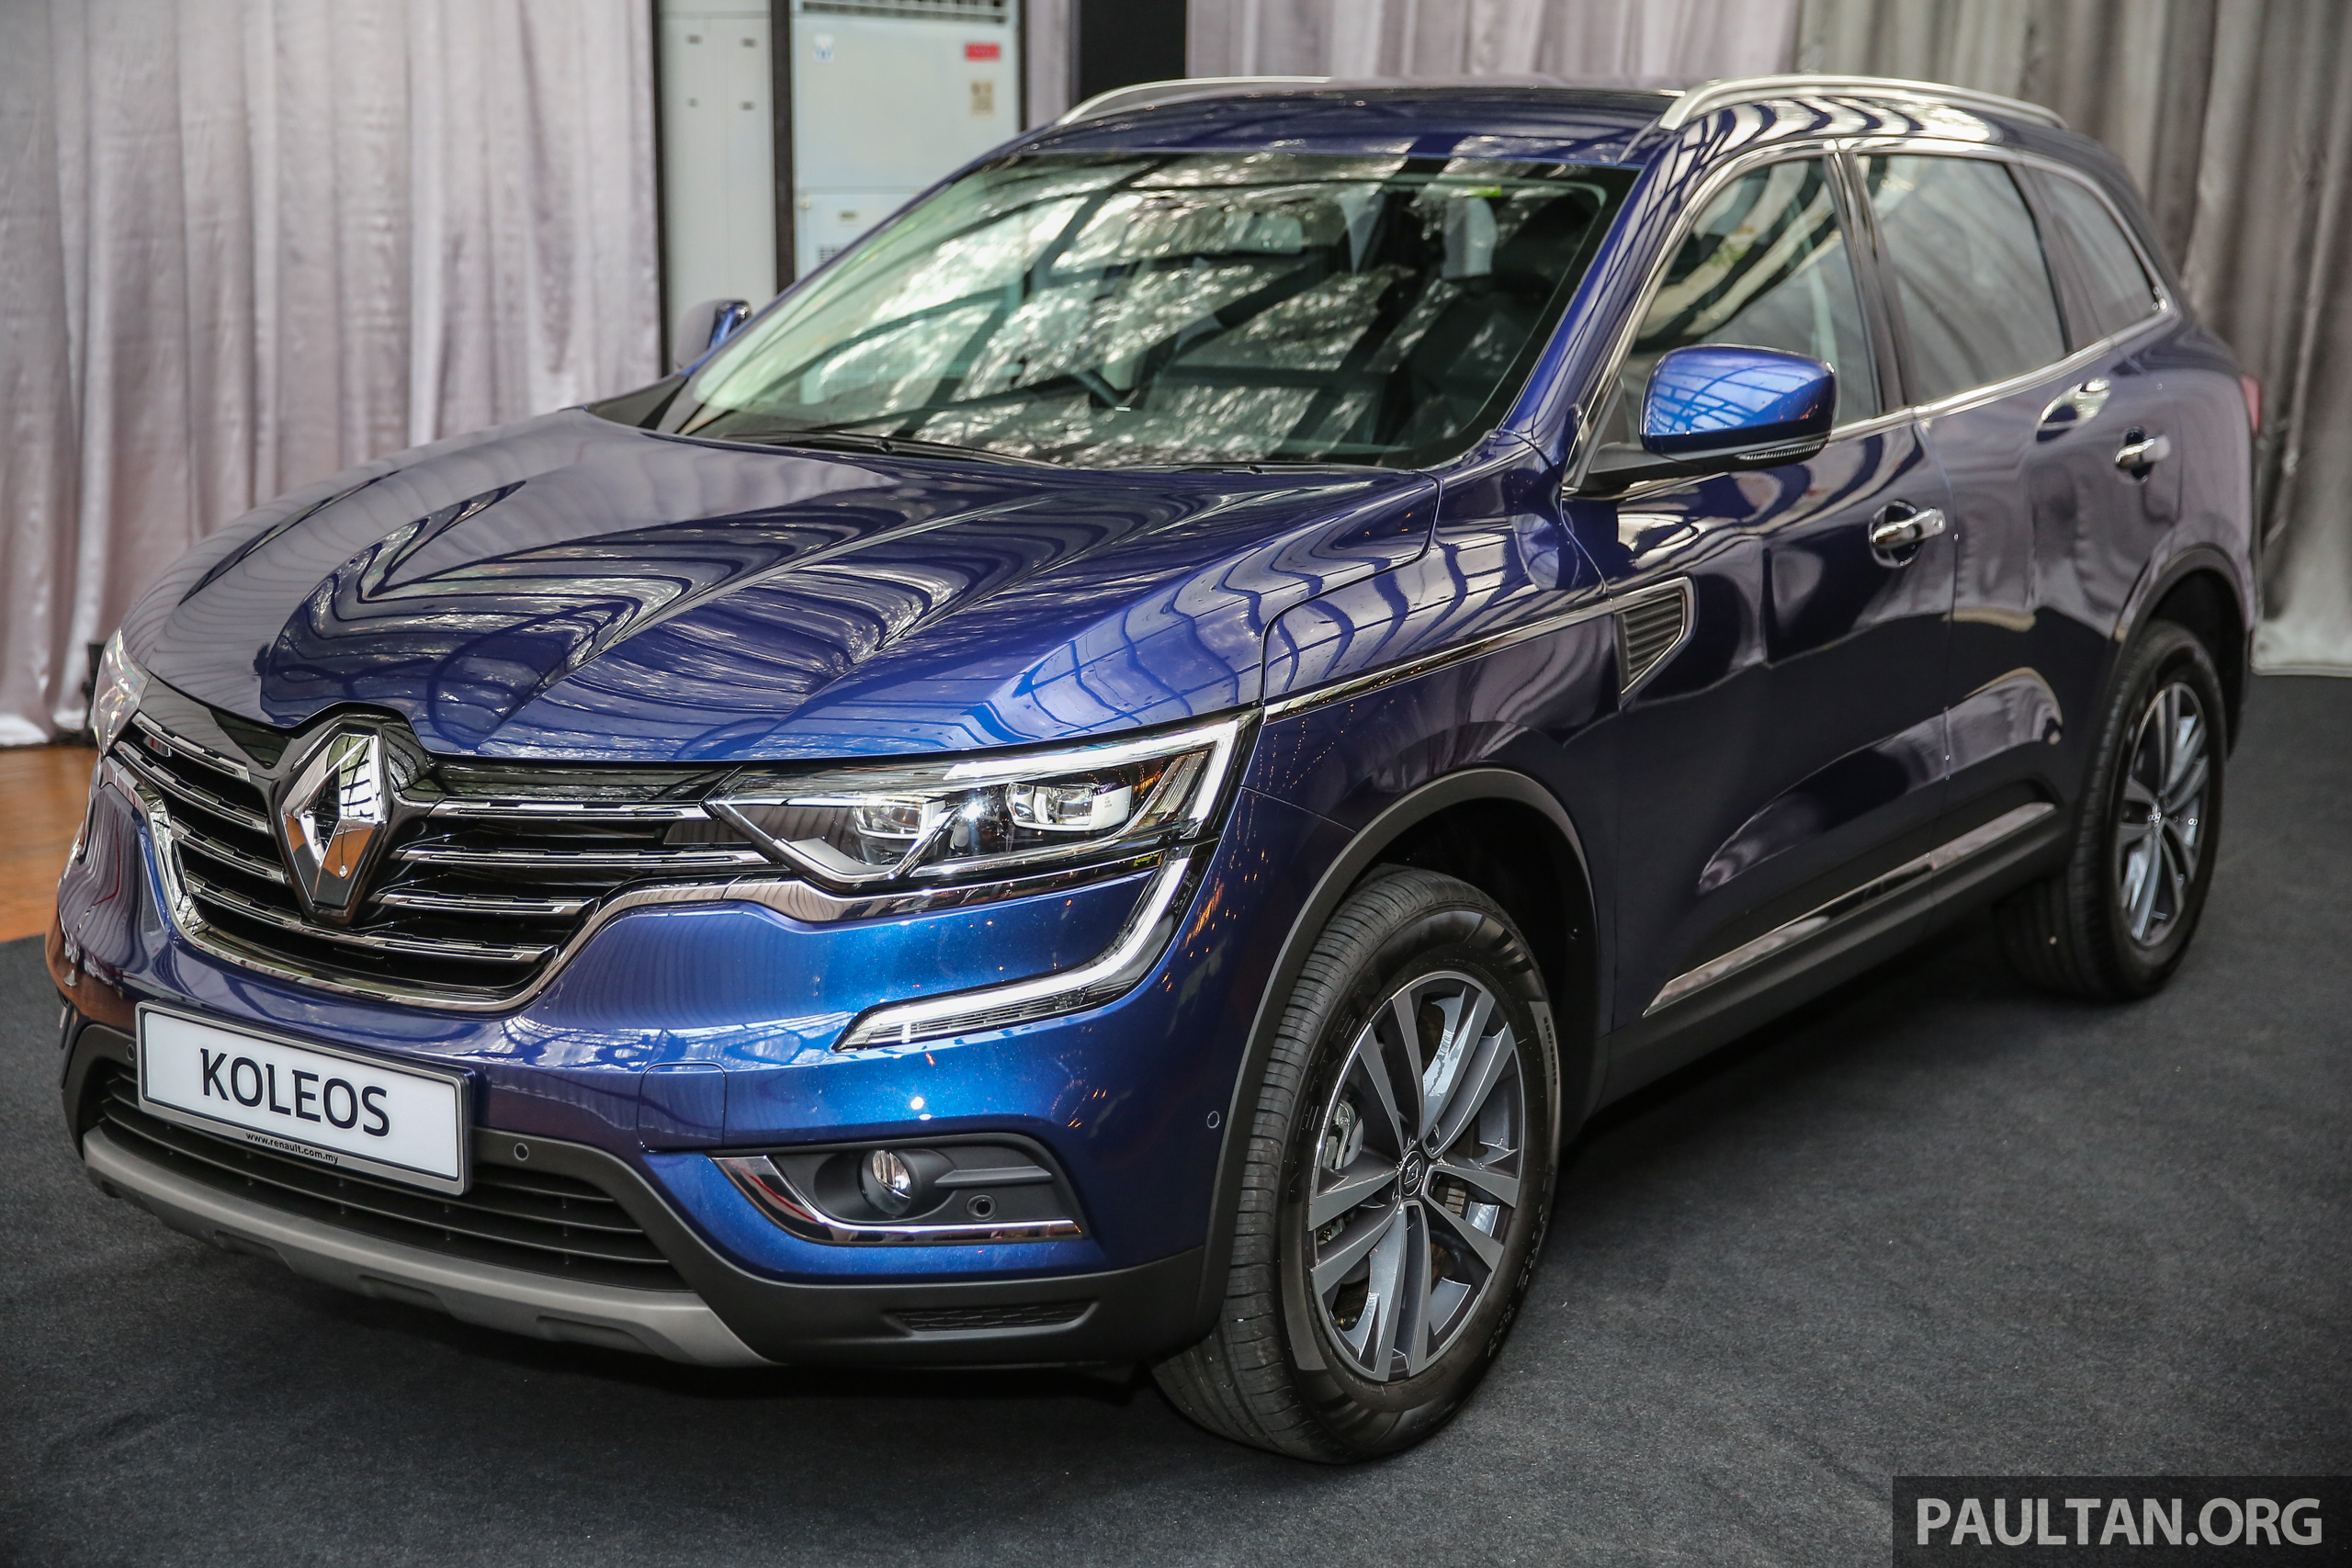 2016 renault koleos 2 5l launched in m 39 sia rm173k. Black Bedroom Furniture Sets. Home Design Ideas